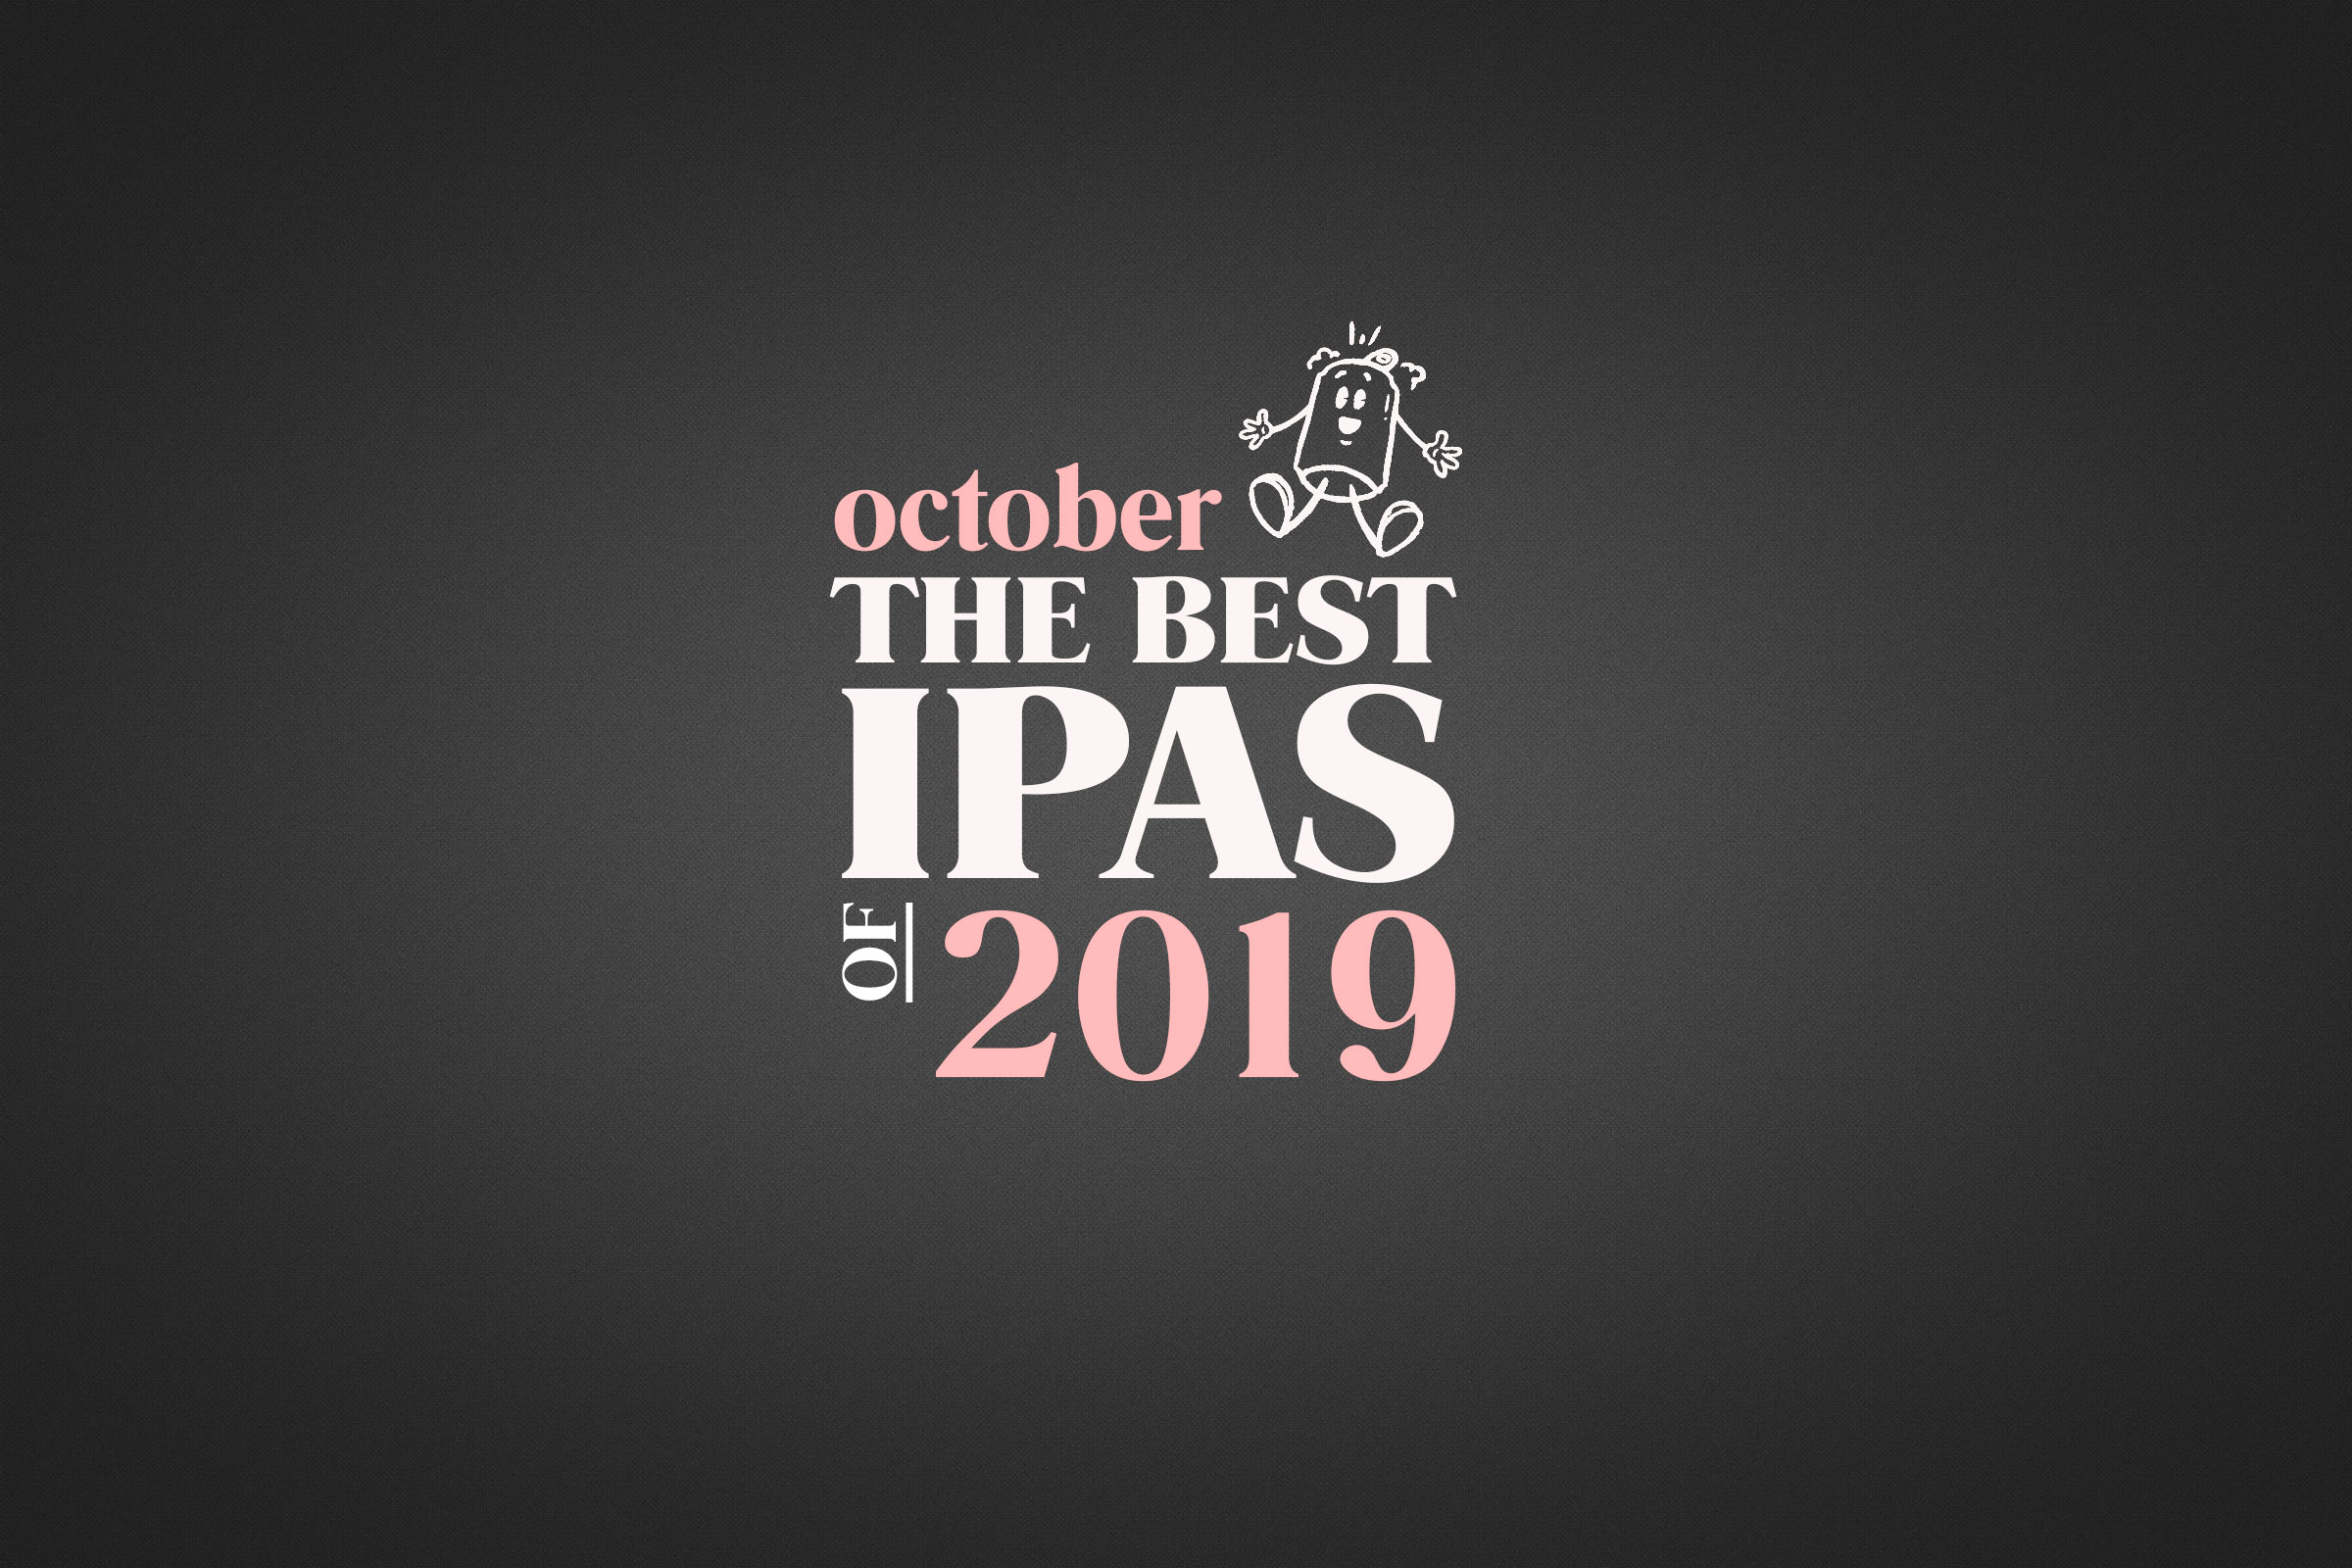 The Best IPAs of 2019